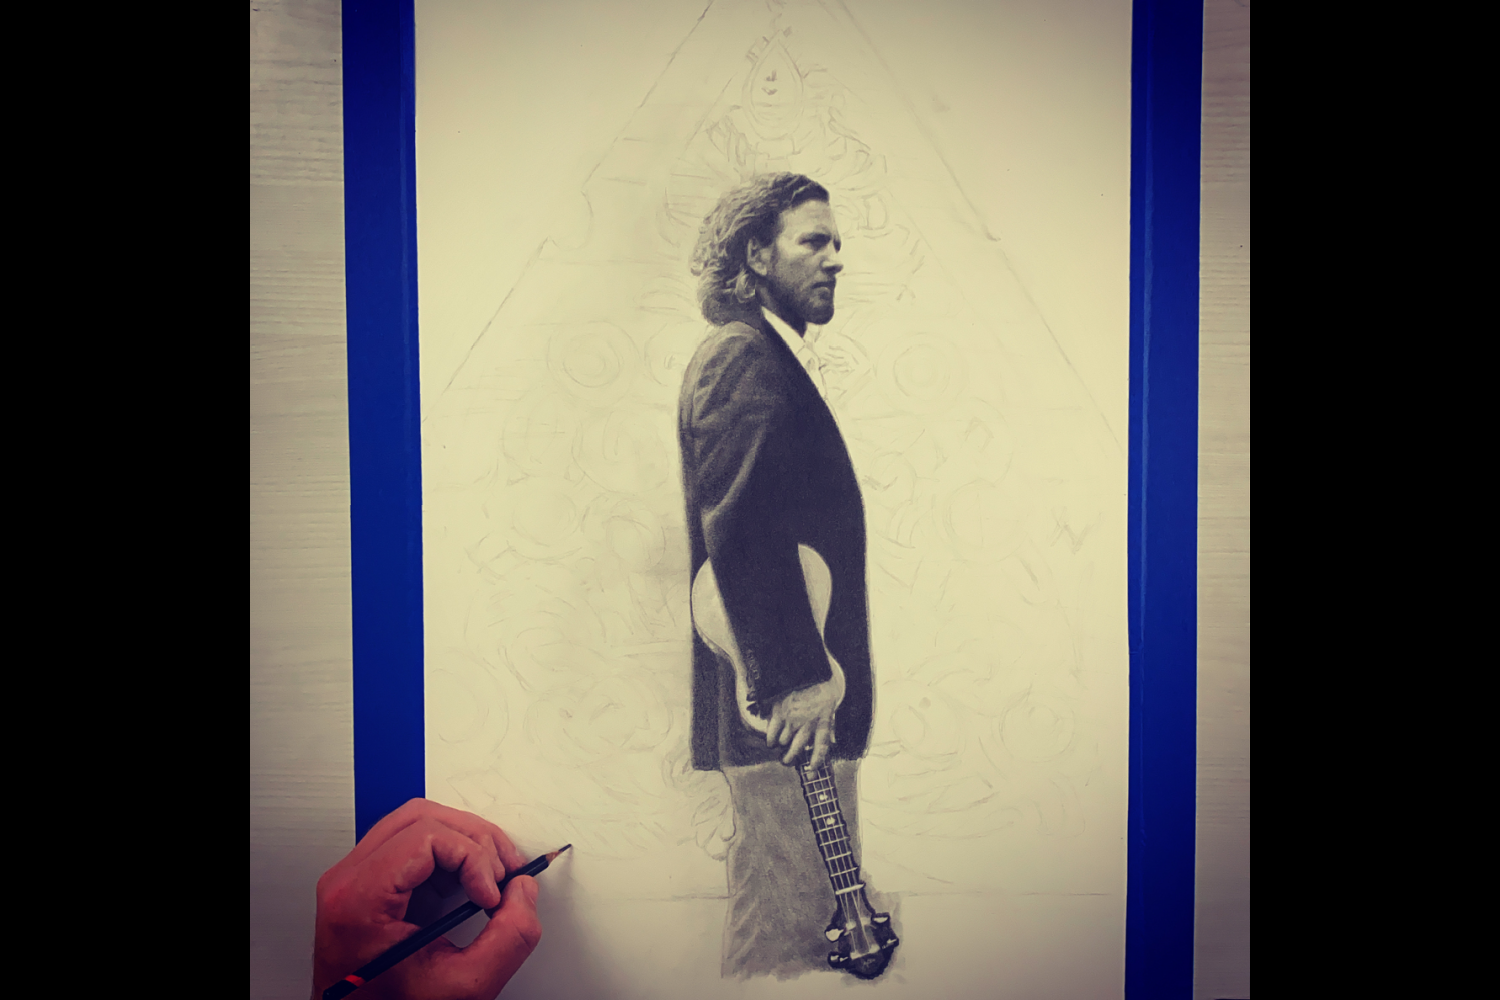 A drawing of Eddie Vedder by artist Keegan Hall. Hall creates photo realistic drawings with pencil and paper. (Image: Keegan Hall)<br><p></p>